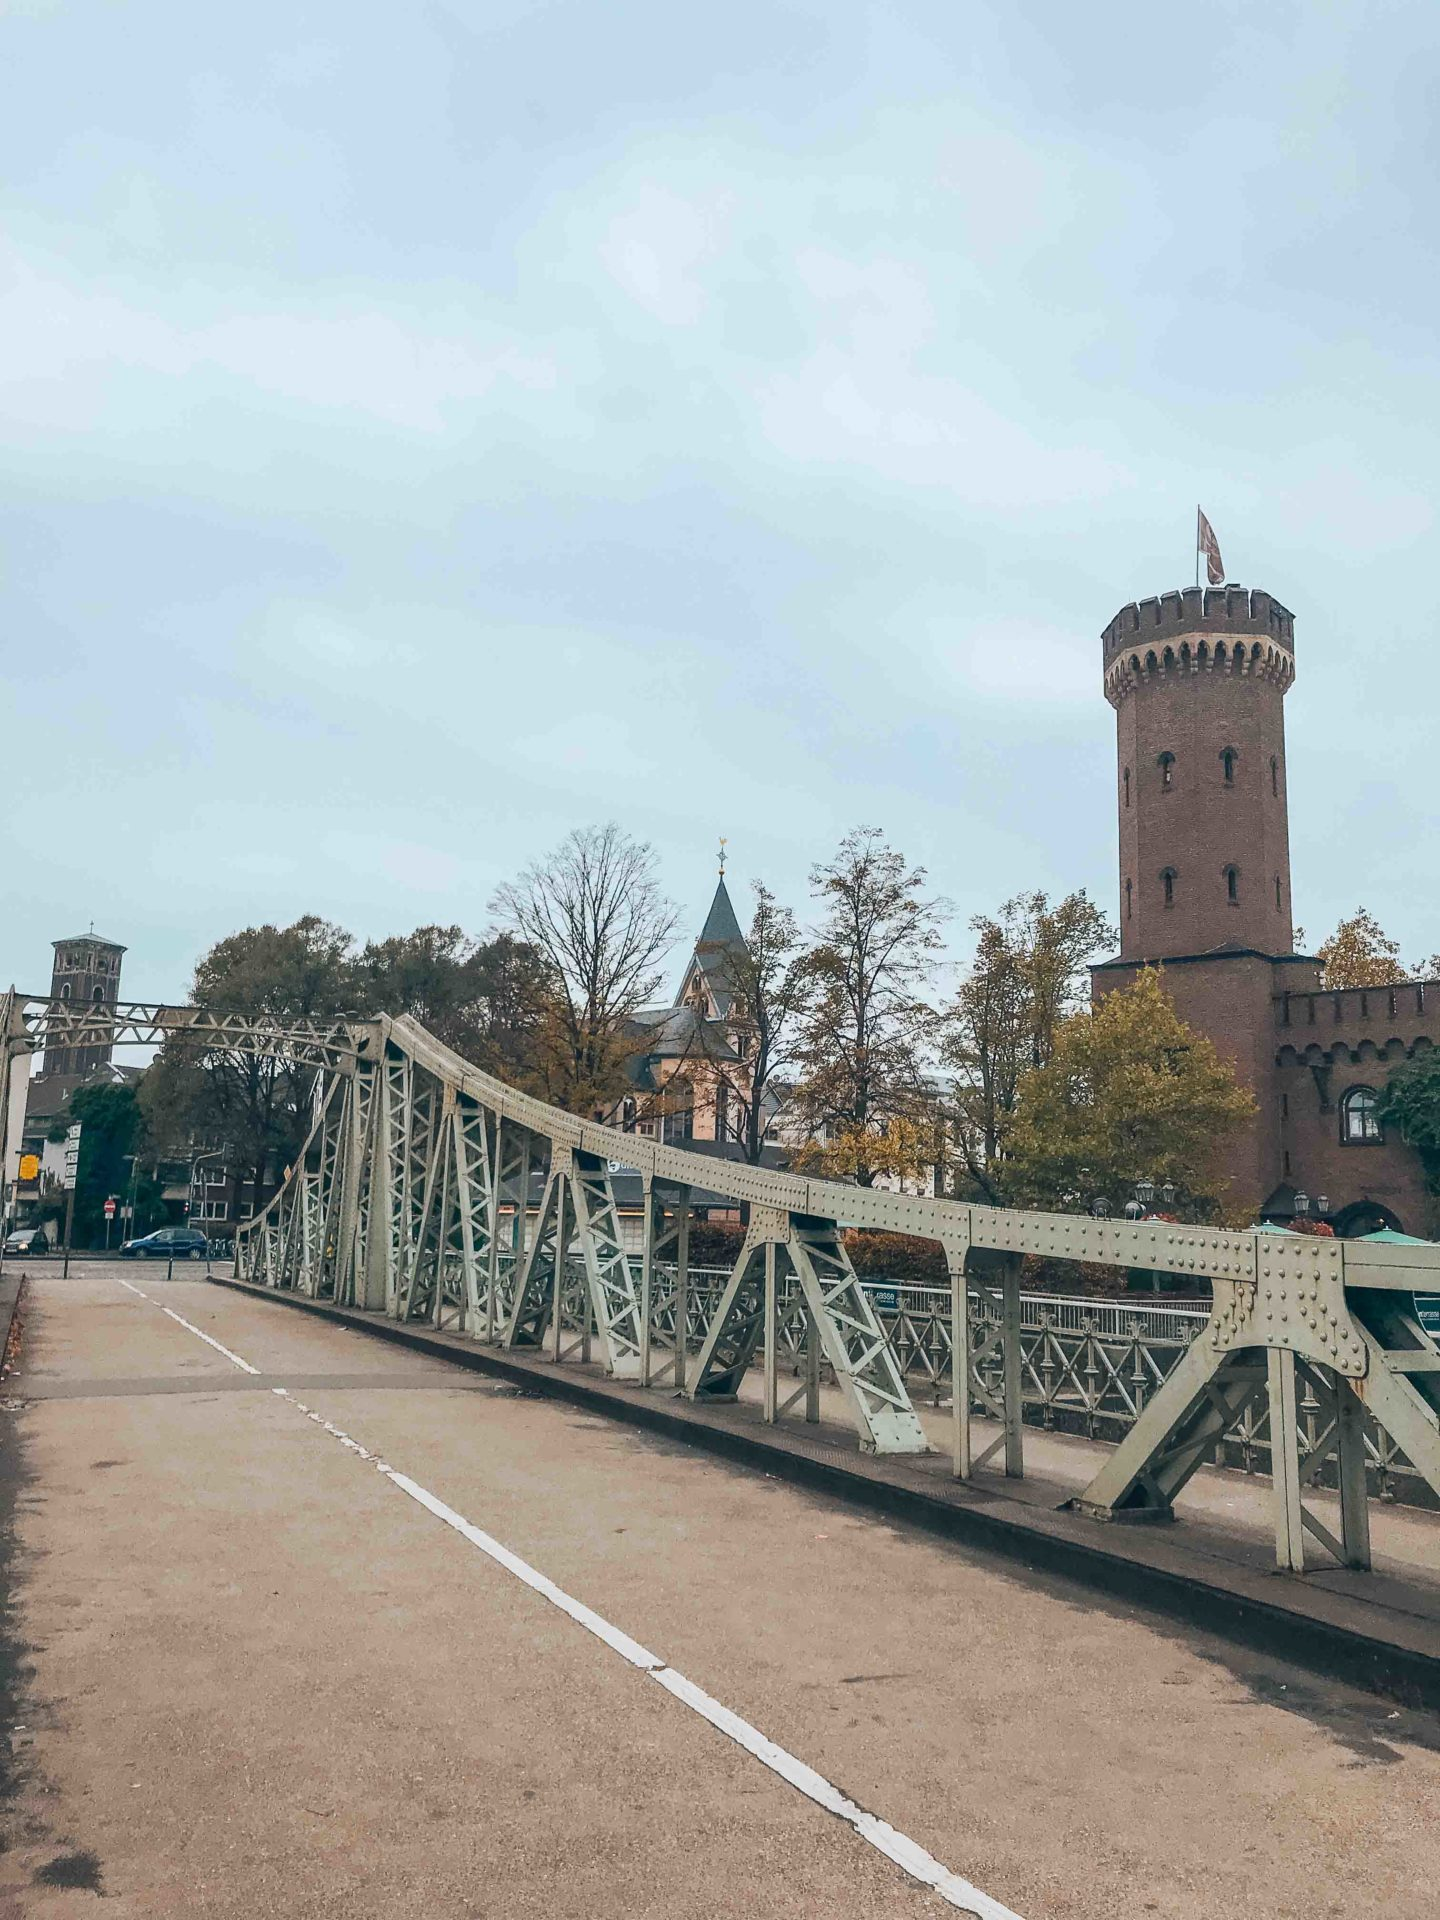 The Malakoffturm and Drehbrücke swing bridge, Cologne